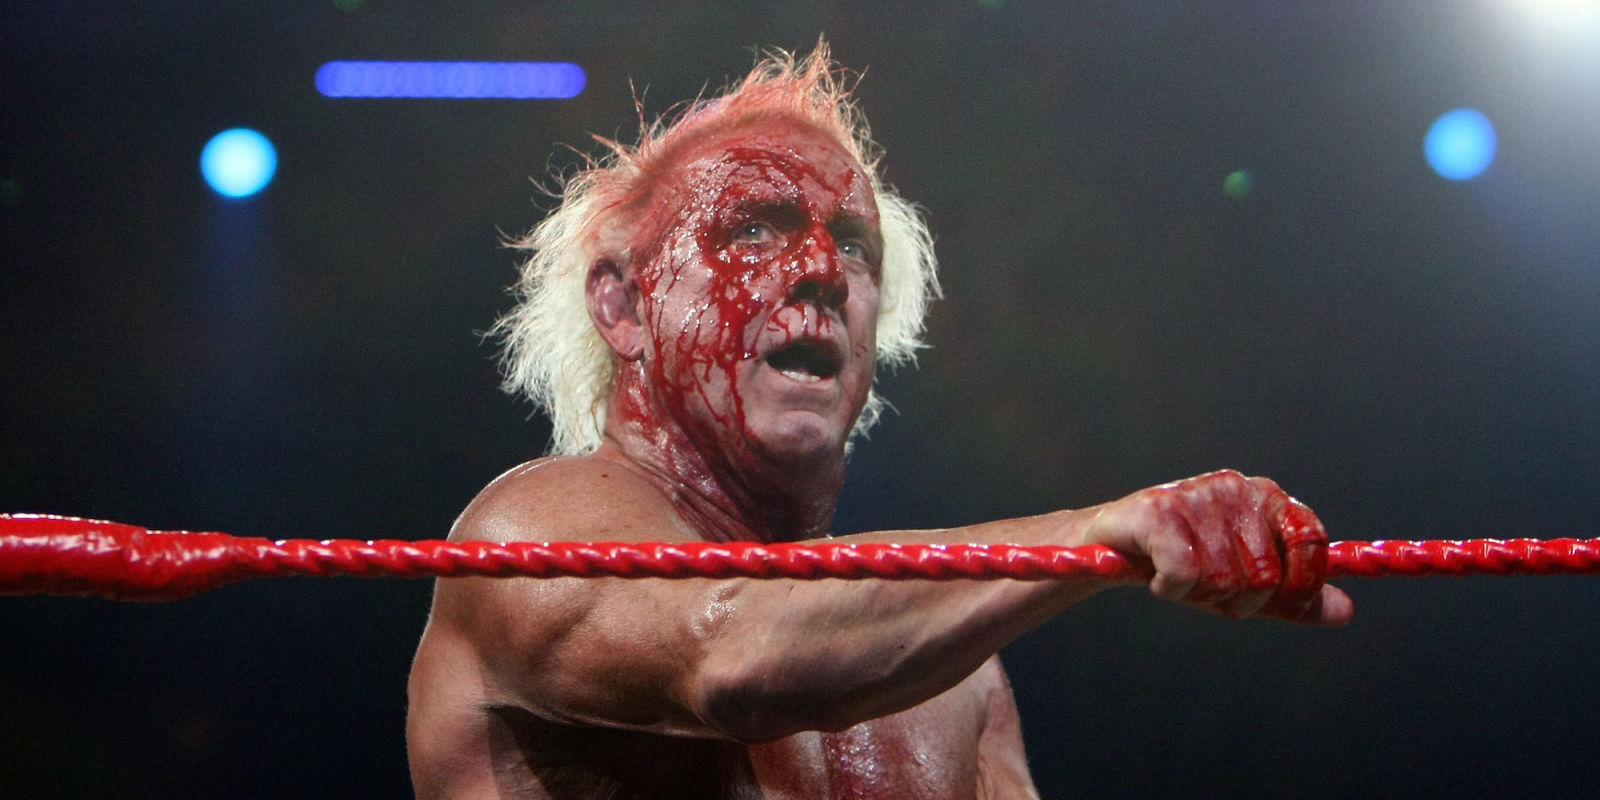 Ric Flair juicing. Courtesy World Wrestling Entertainment.